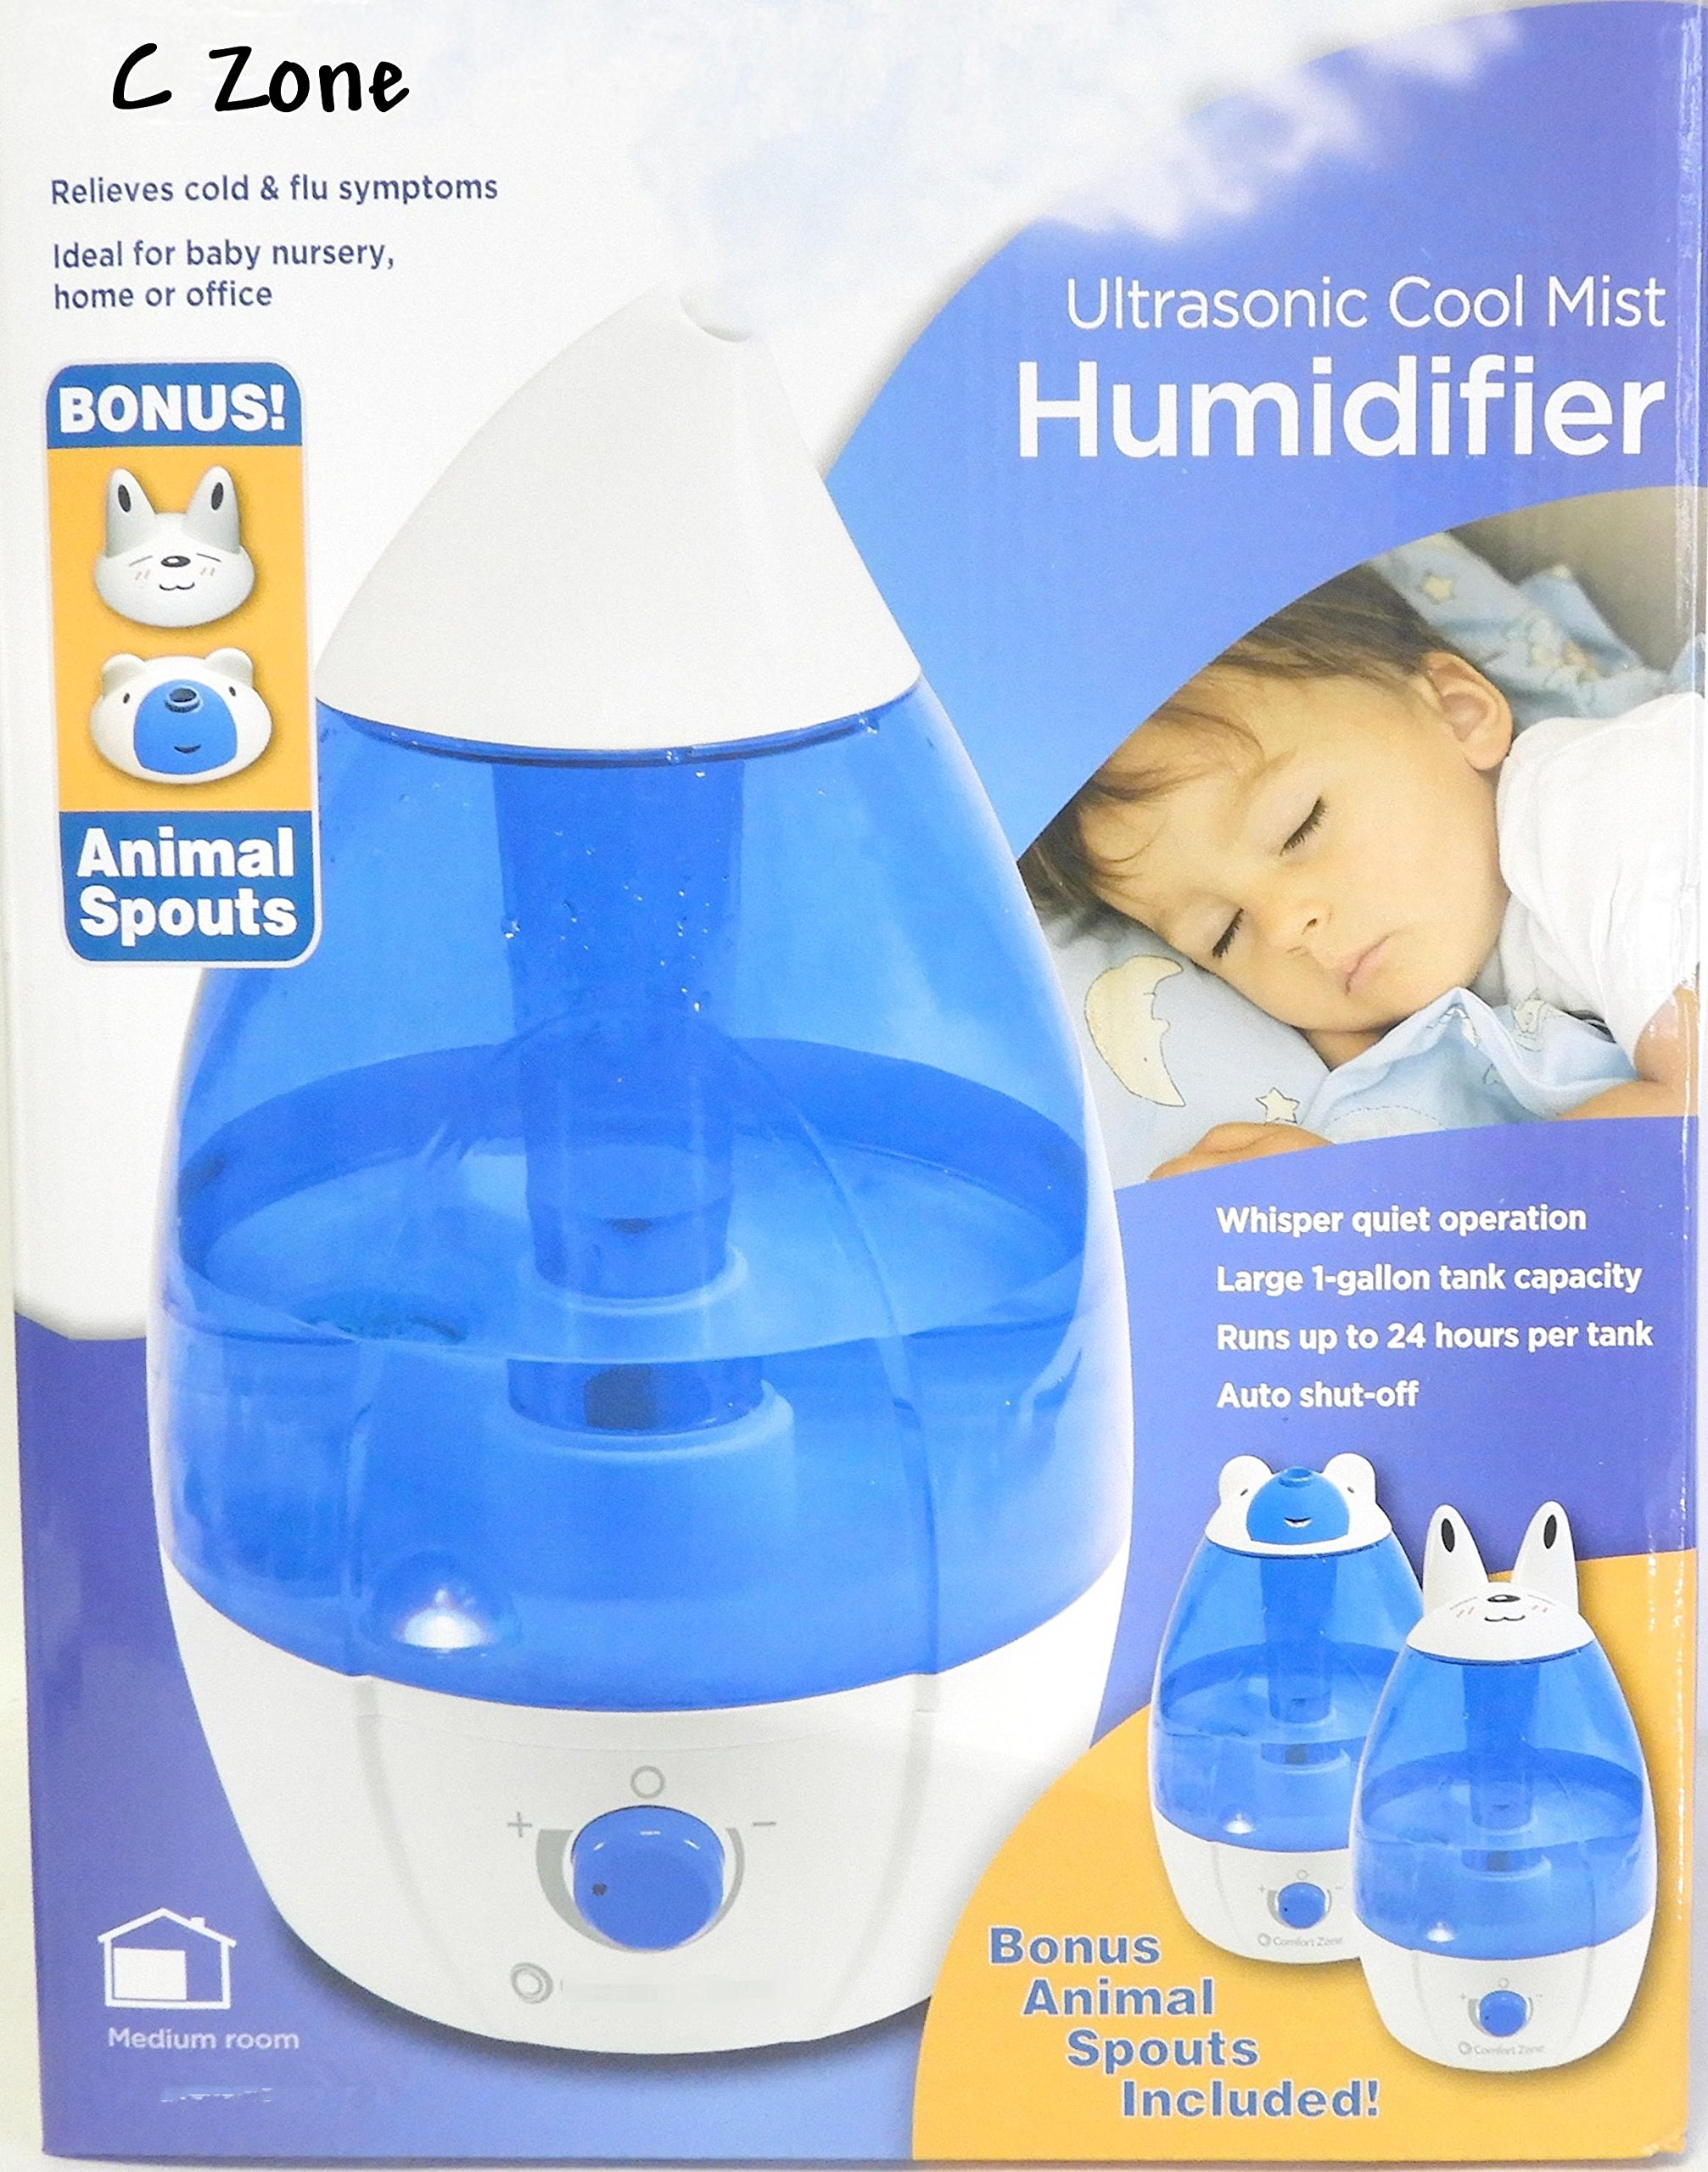 The C Zone Large 1 Gallon 24 Hour Ultrasonic Cool Mist Humidifier